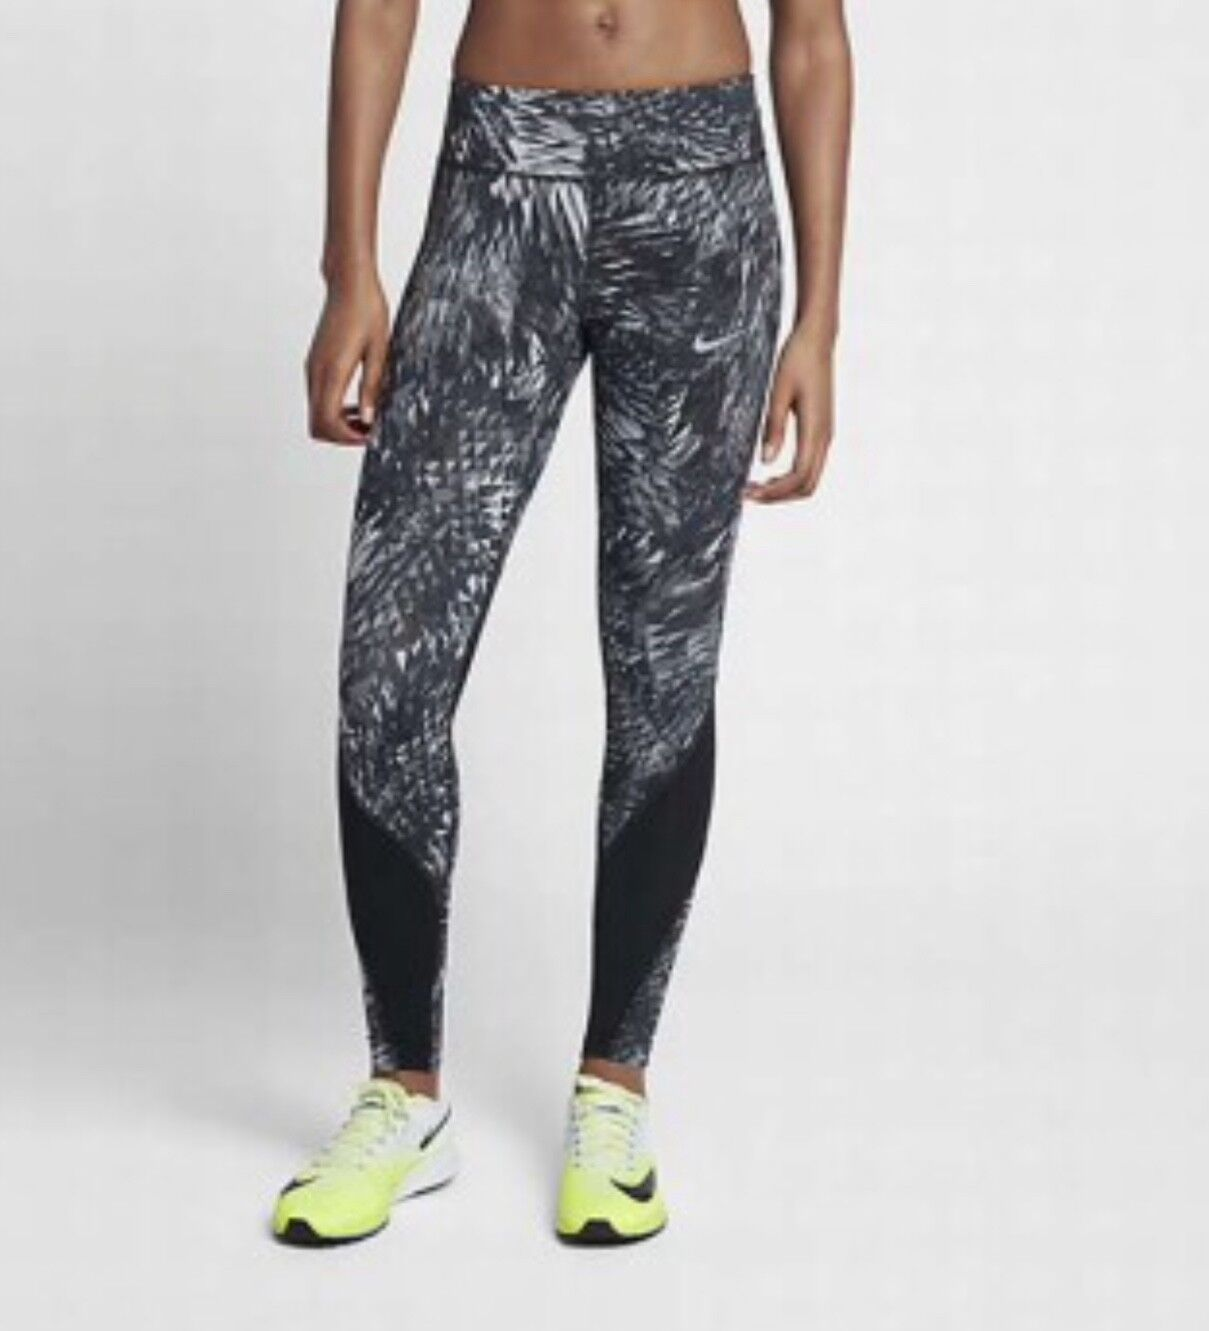 NIKE POWER EPIC LUX RUNNING TIGHTS LEGGING GYM TRAINING 831800-021 Xtra Small